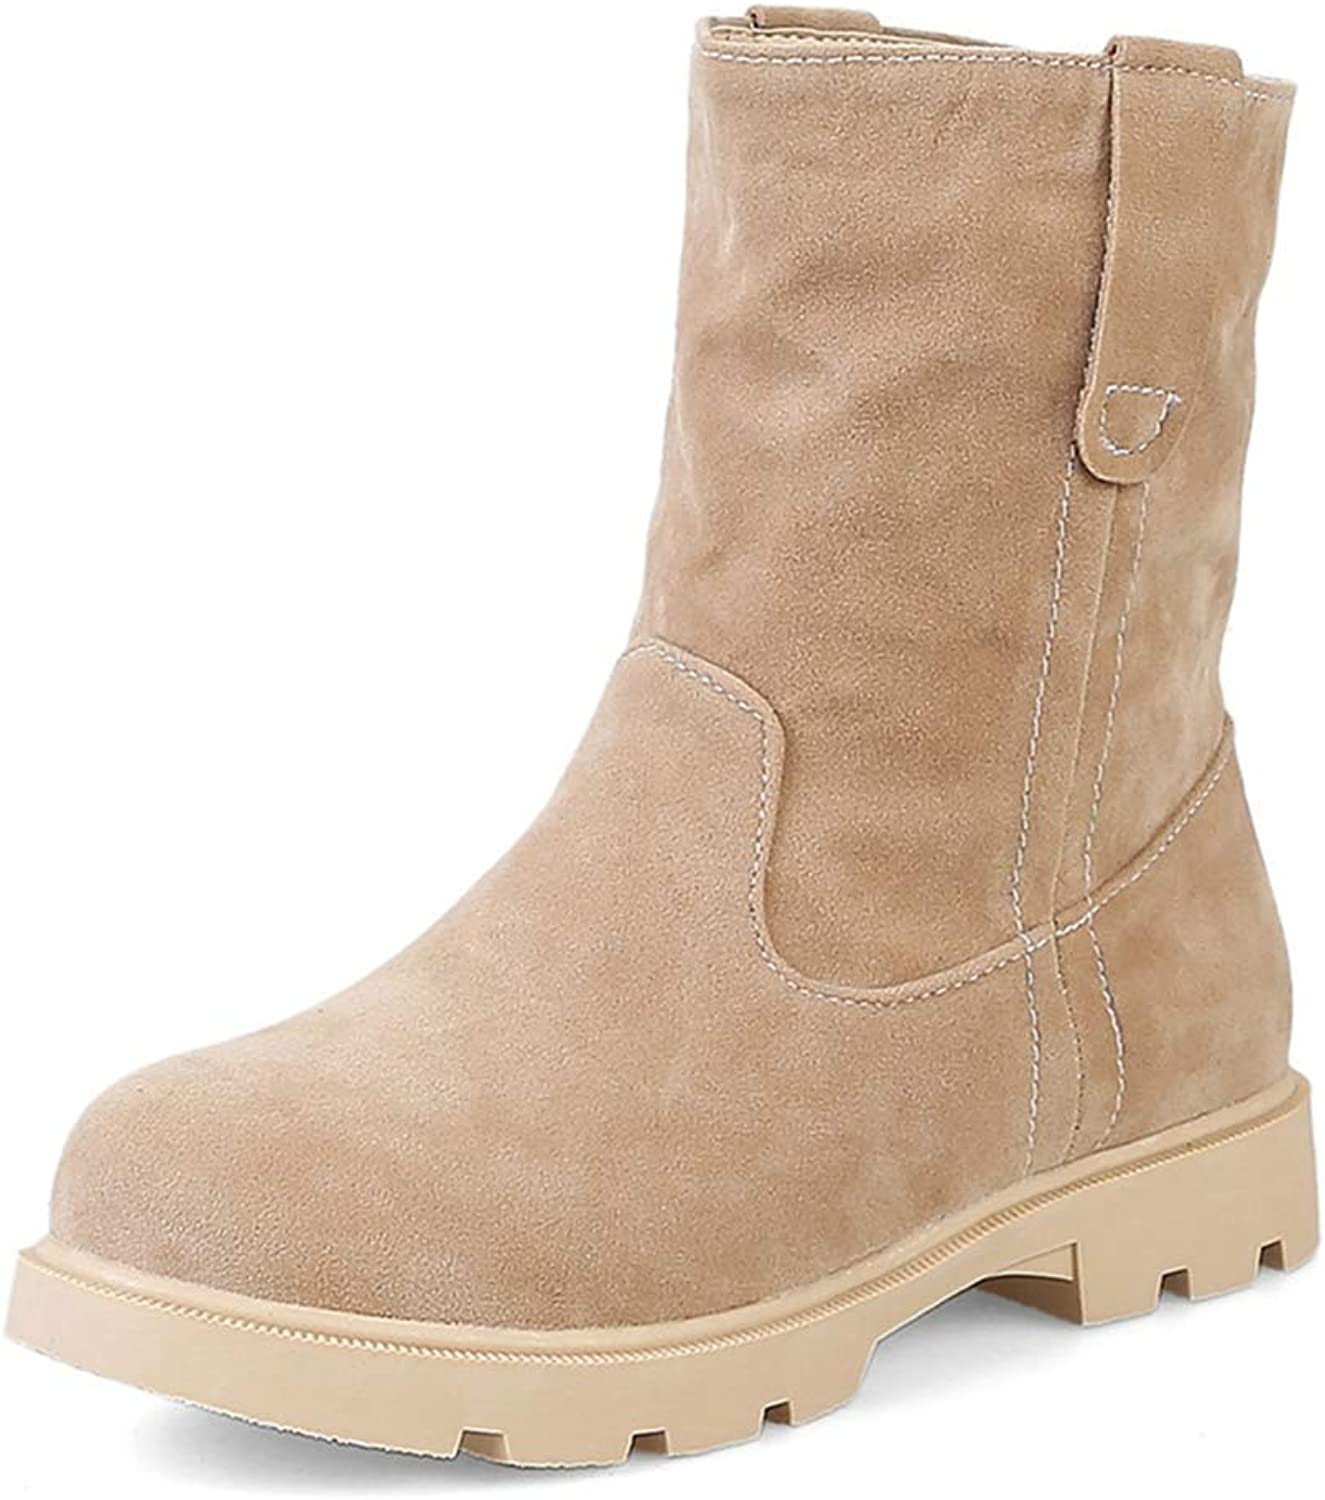 Women's Flat Cowboy Martin Ankle Boots Casual Round Toe Slip-On Bootie Comfy Daliy Walking Short Boots